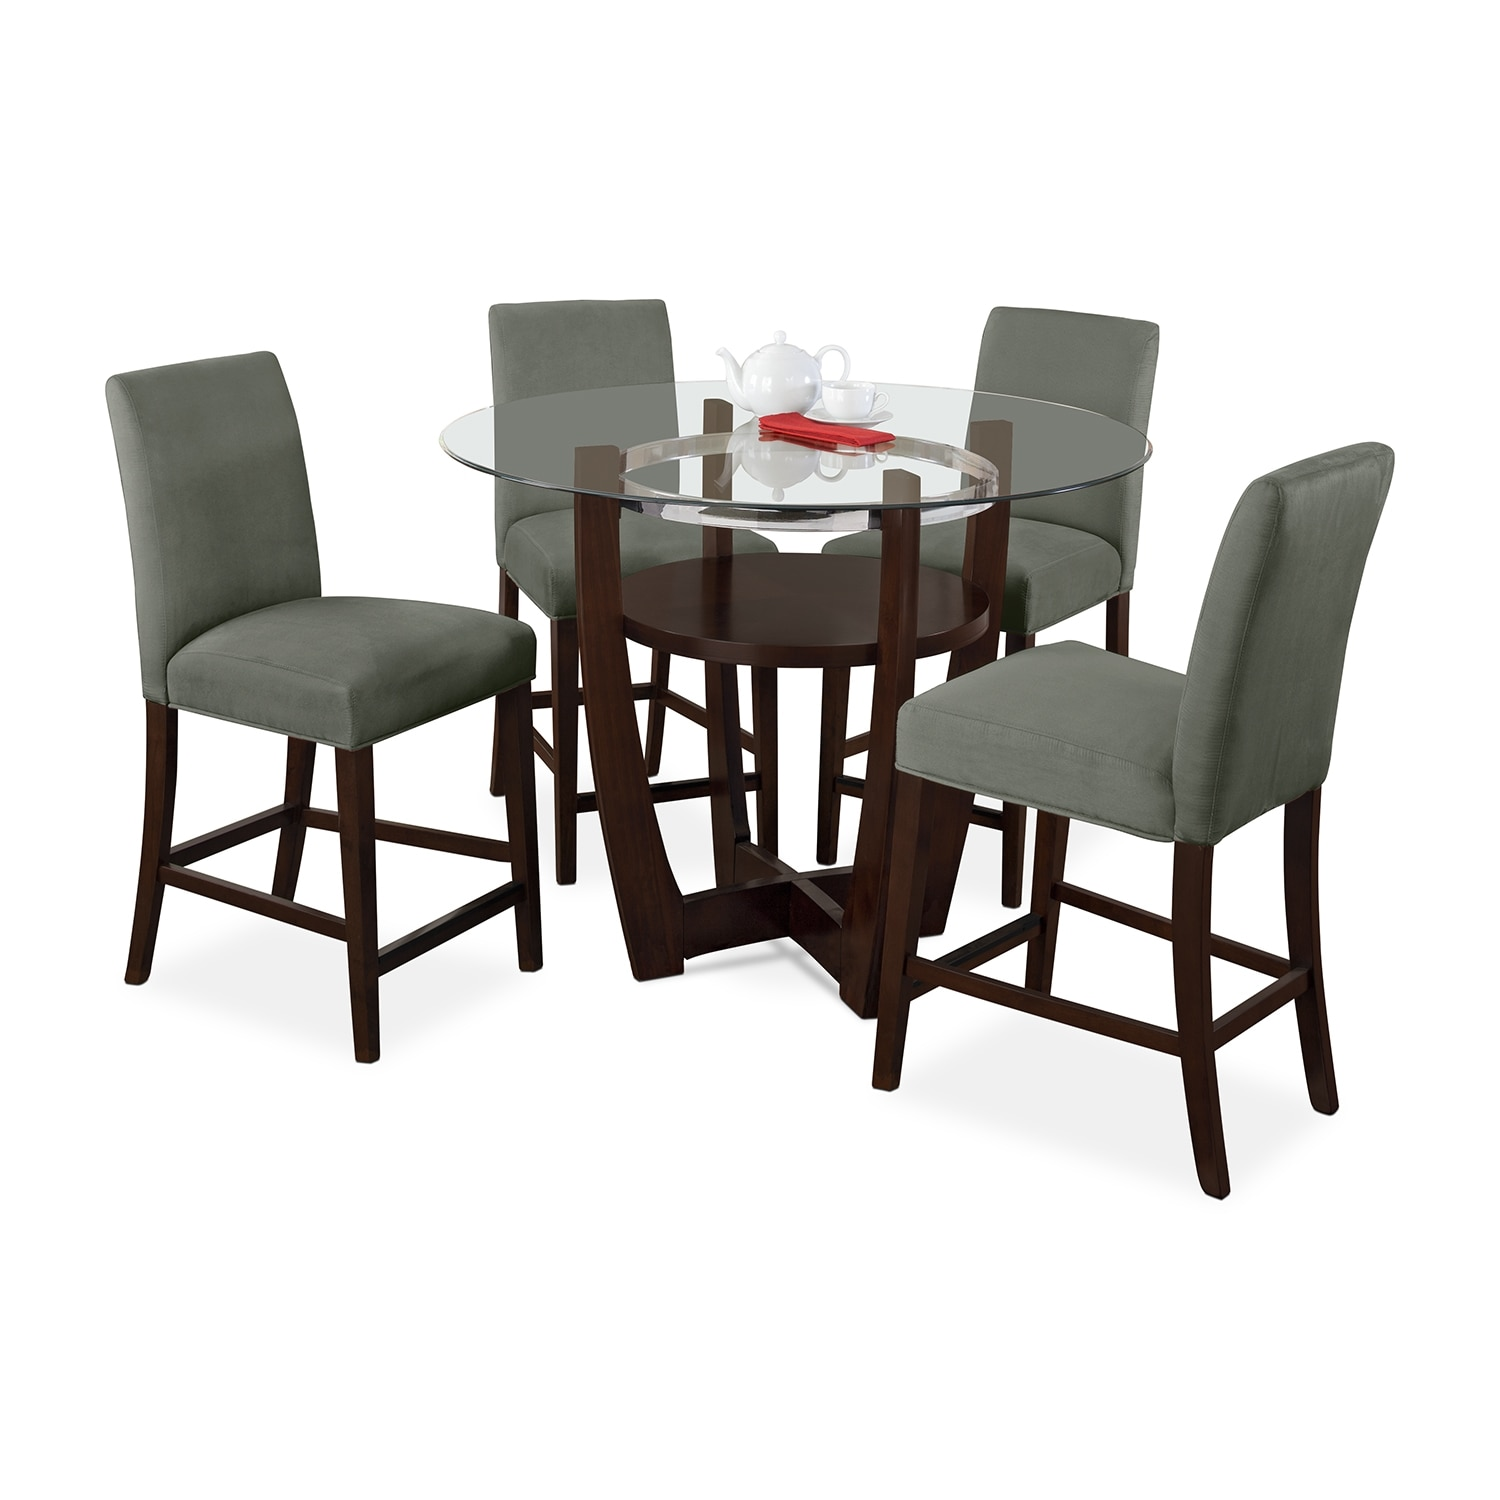 Alcove Counter-Height Dinette with 4 Side Chairs - Sage